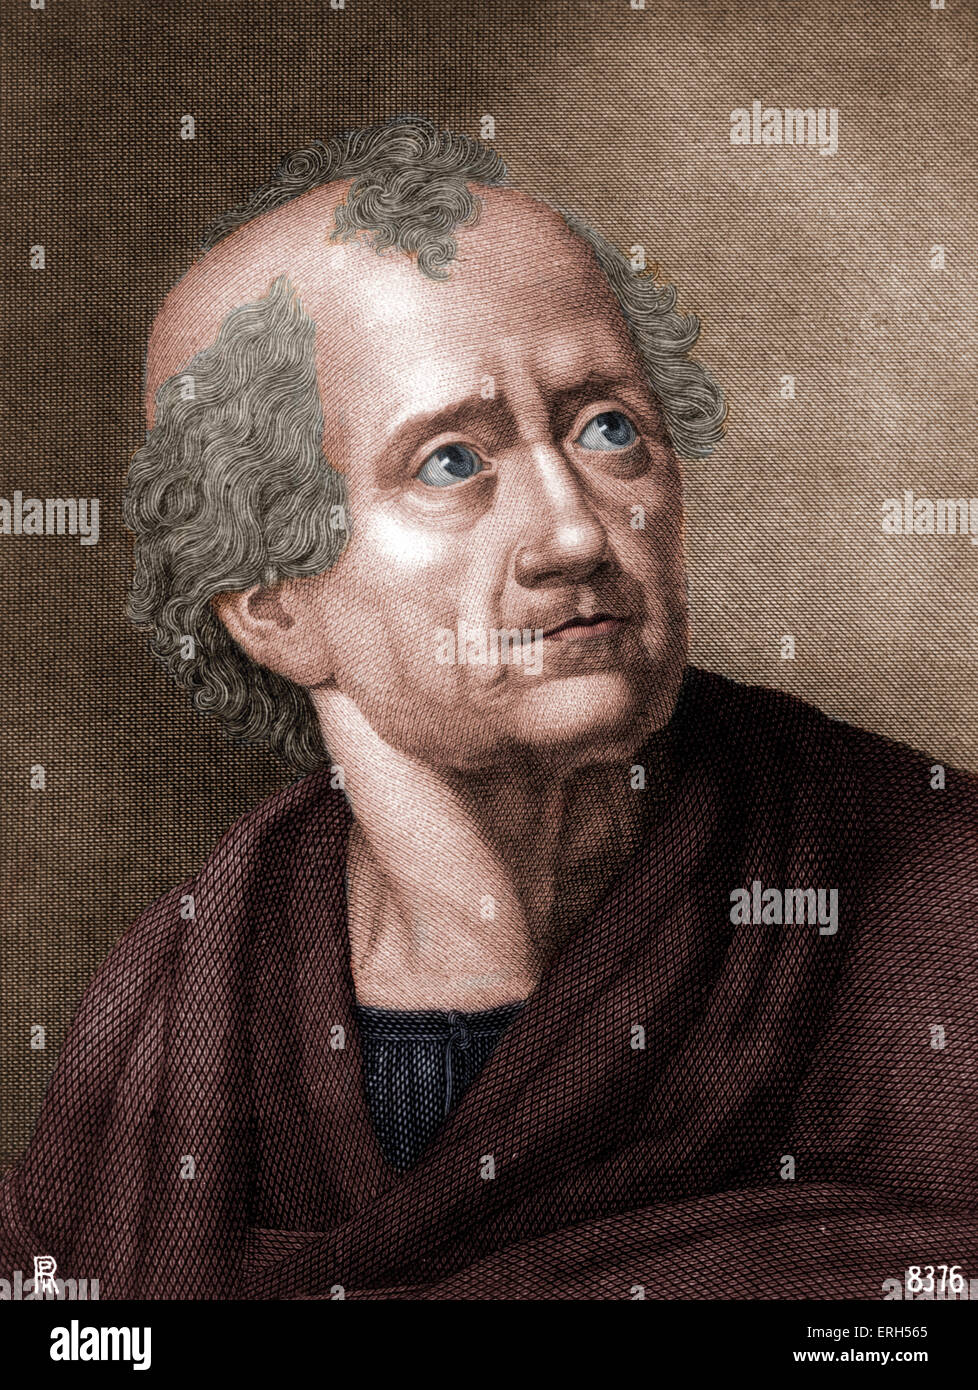 KLOPSTOCK, Friedrich German poet, 1724-1803 - wrote text with Mahler for M's Resurrection in 2nd symphony. Colourised - Stock Image